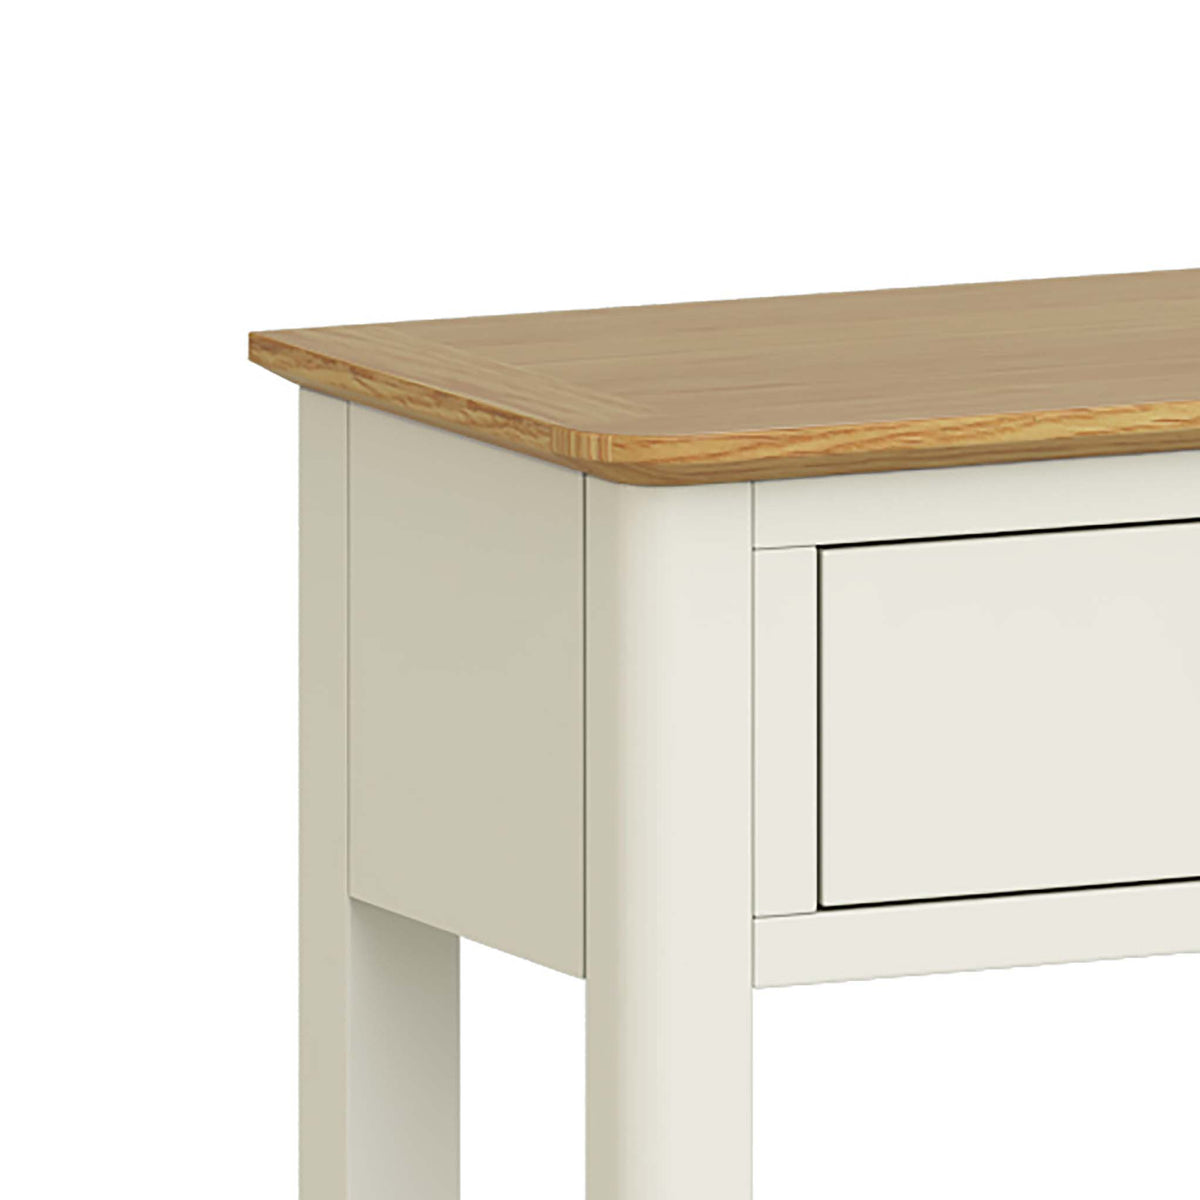 The Windsor Cream Painted Console Table with Storage Drawers - Close Up of Oak Top